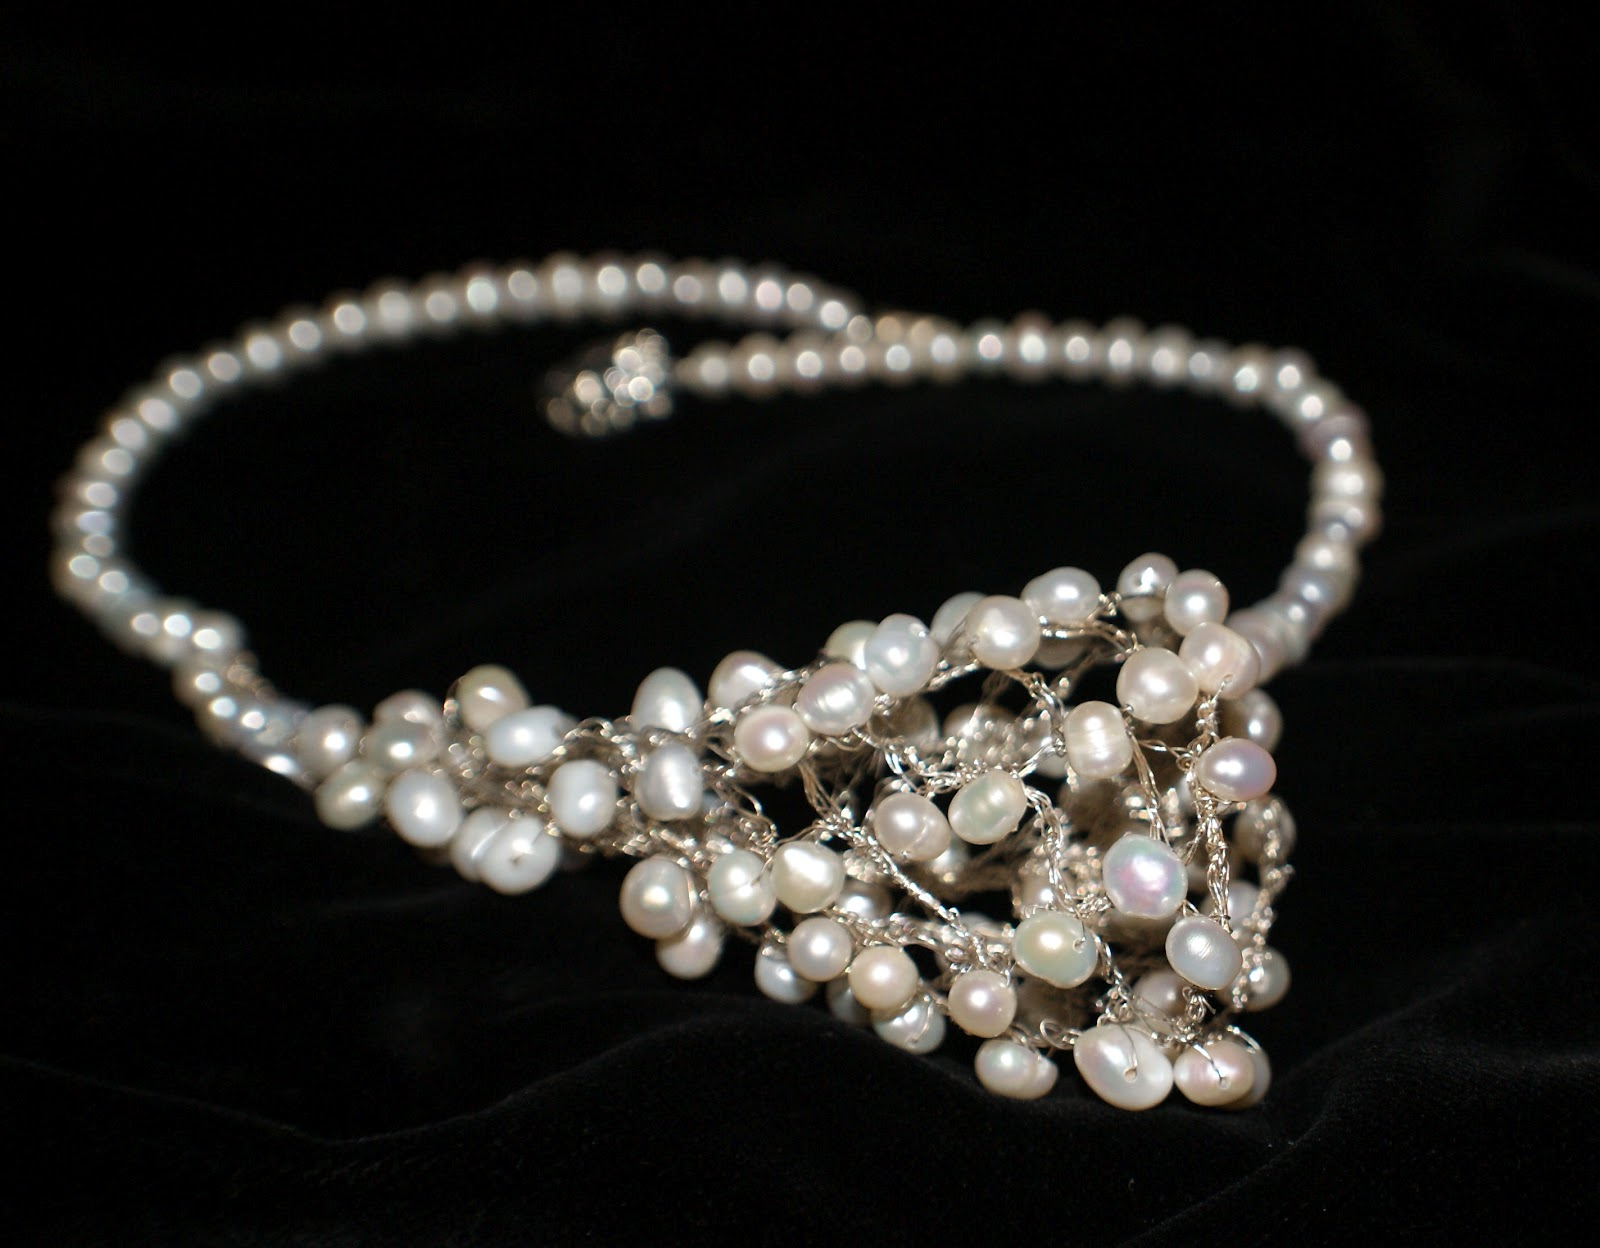 Handmade Wedding Jewellery Ideas : Handmade bridal and wedding jewelry by vintage touch celebrate your